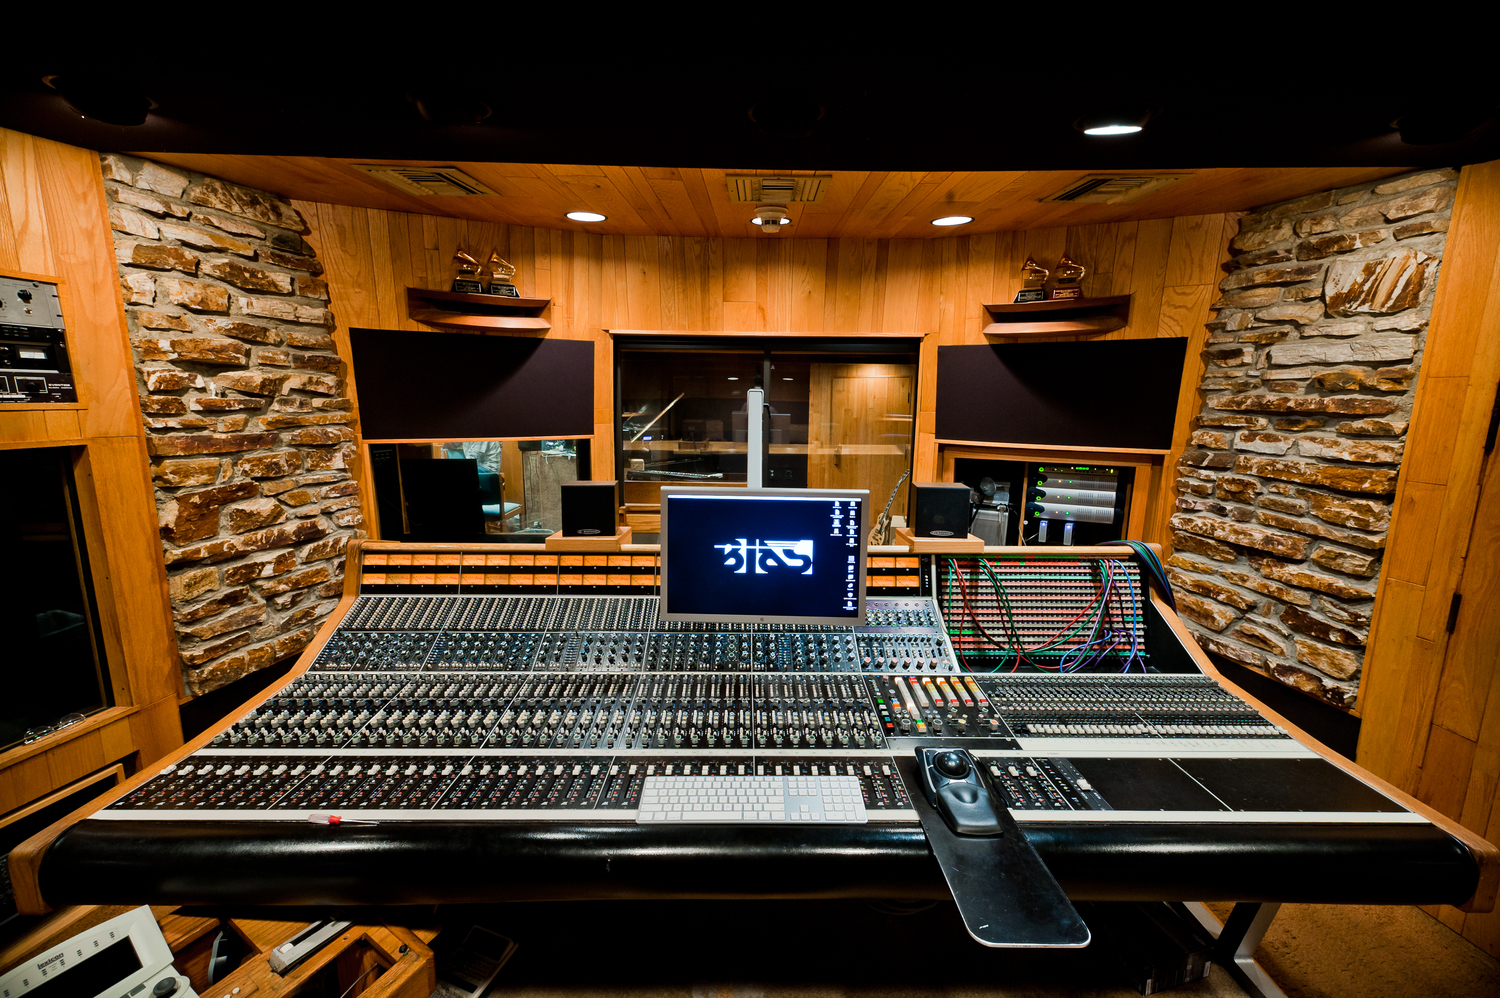 Bias Studios Is One Of The Premier Recording Facilities In Washington DC Area Serving Music Community For Over 40 Years